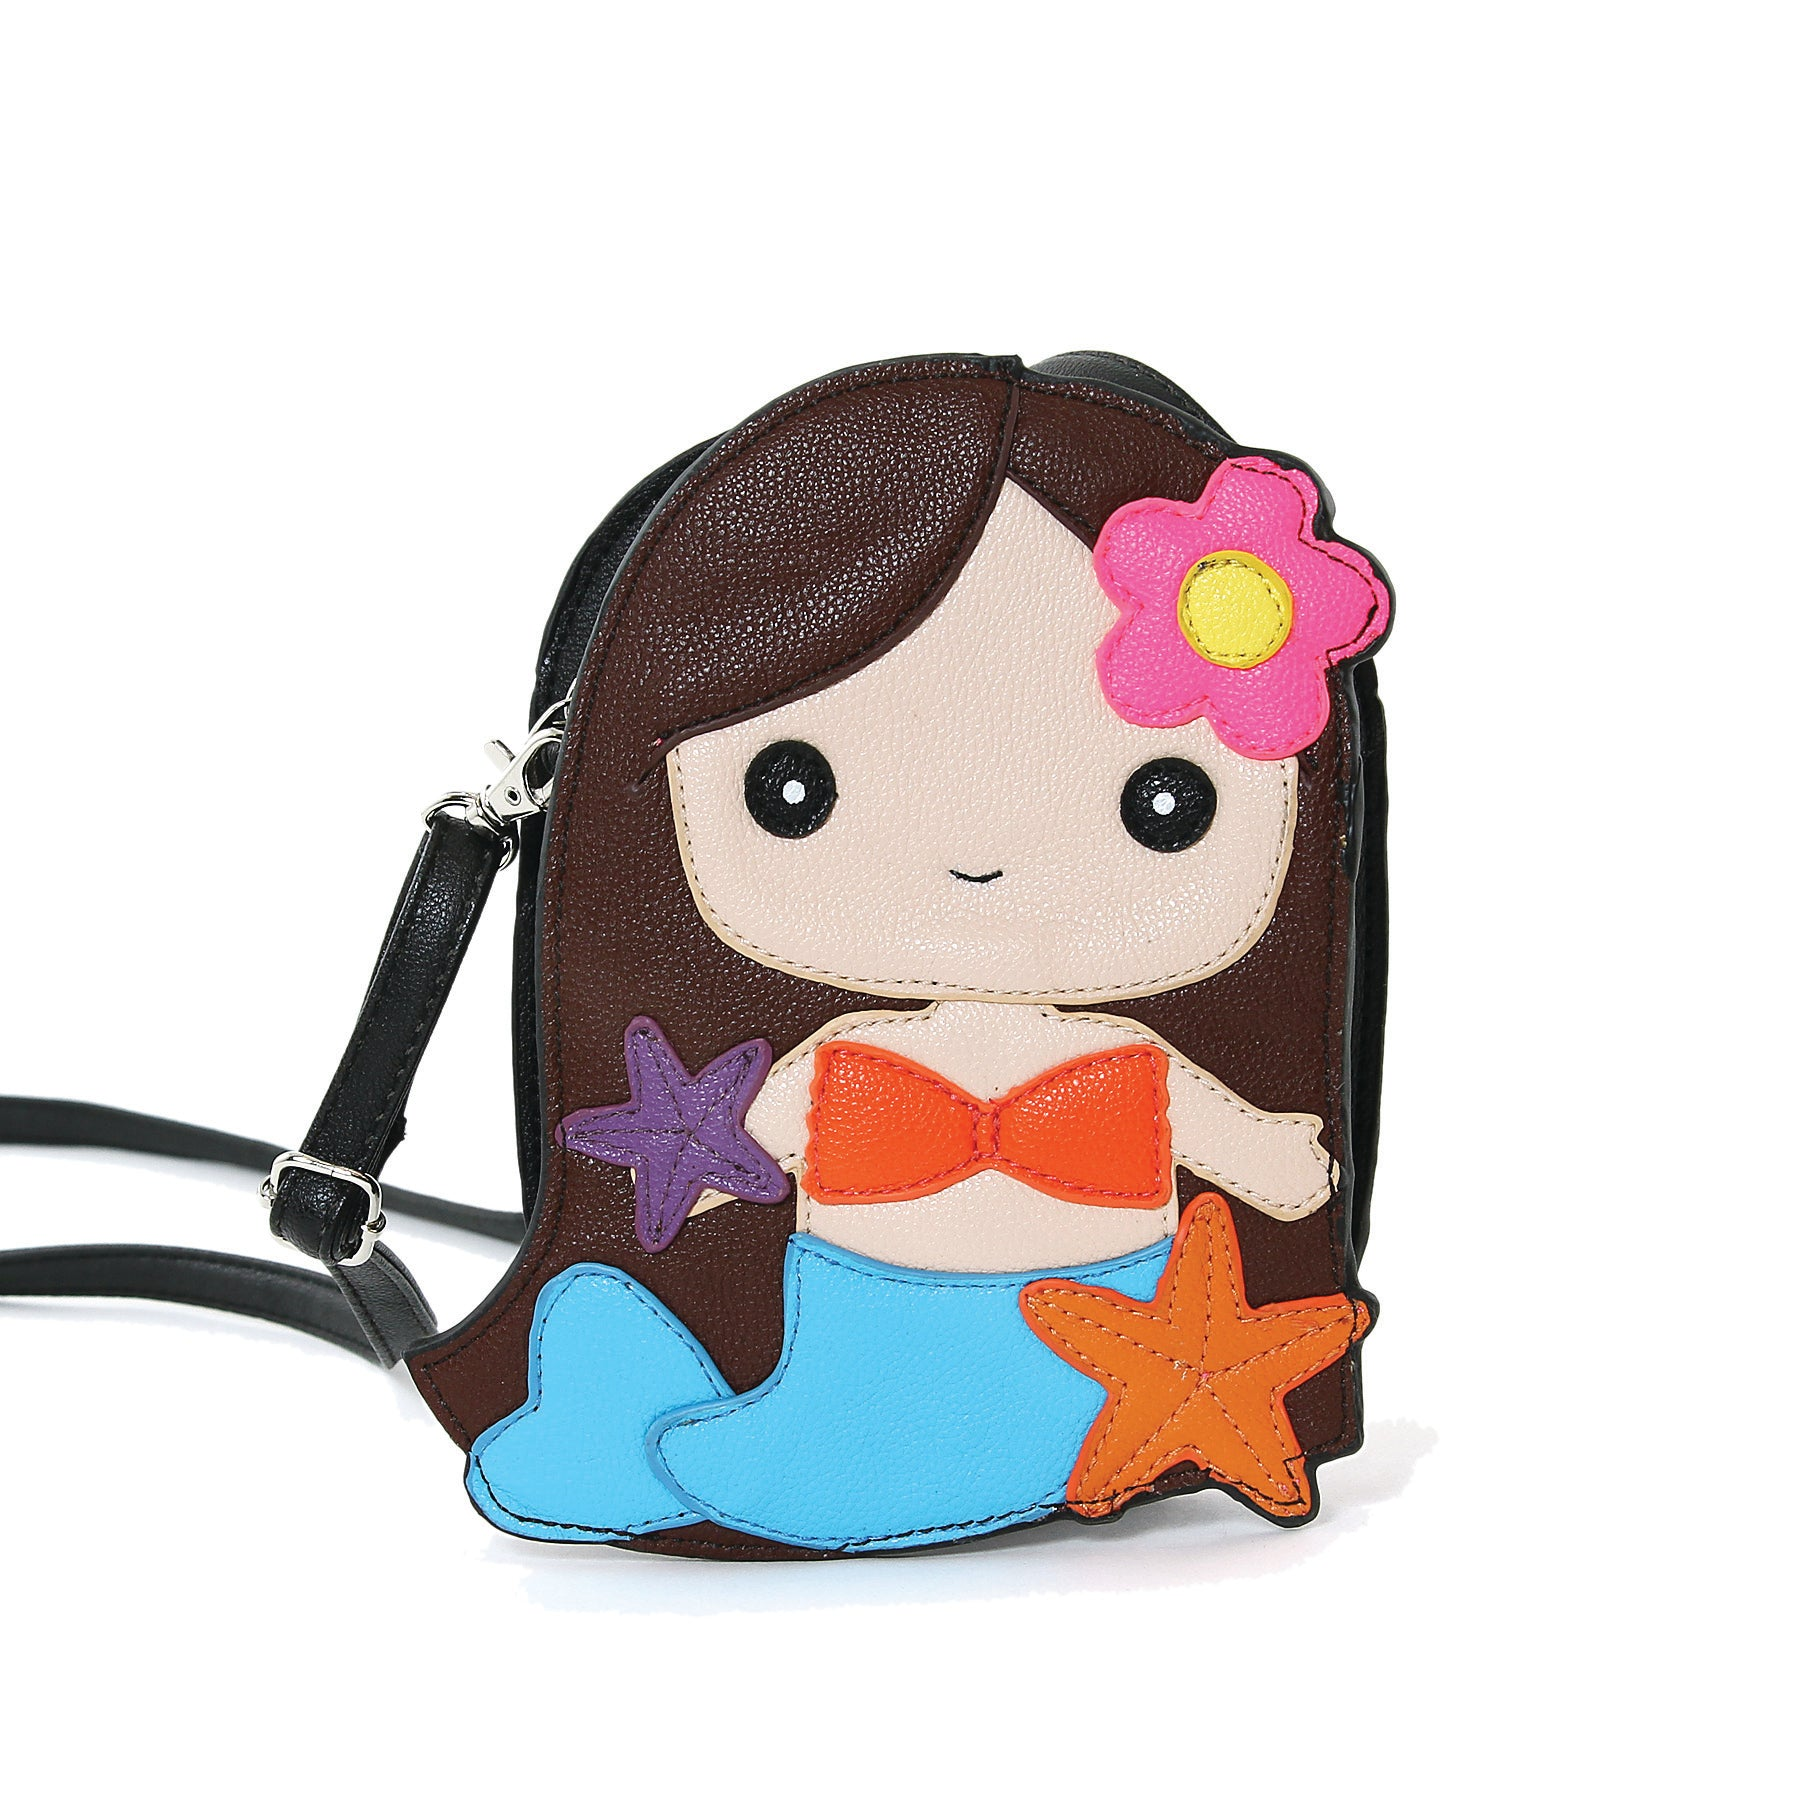 Adorable Mermaid Girl Shoulder Crossbody Bag in Vinyl Material, brown color, front view